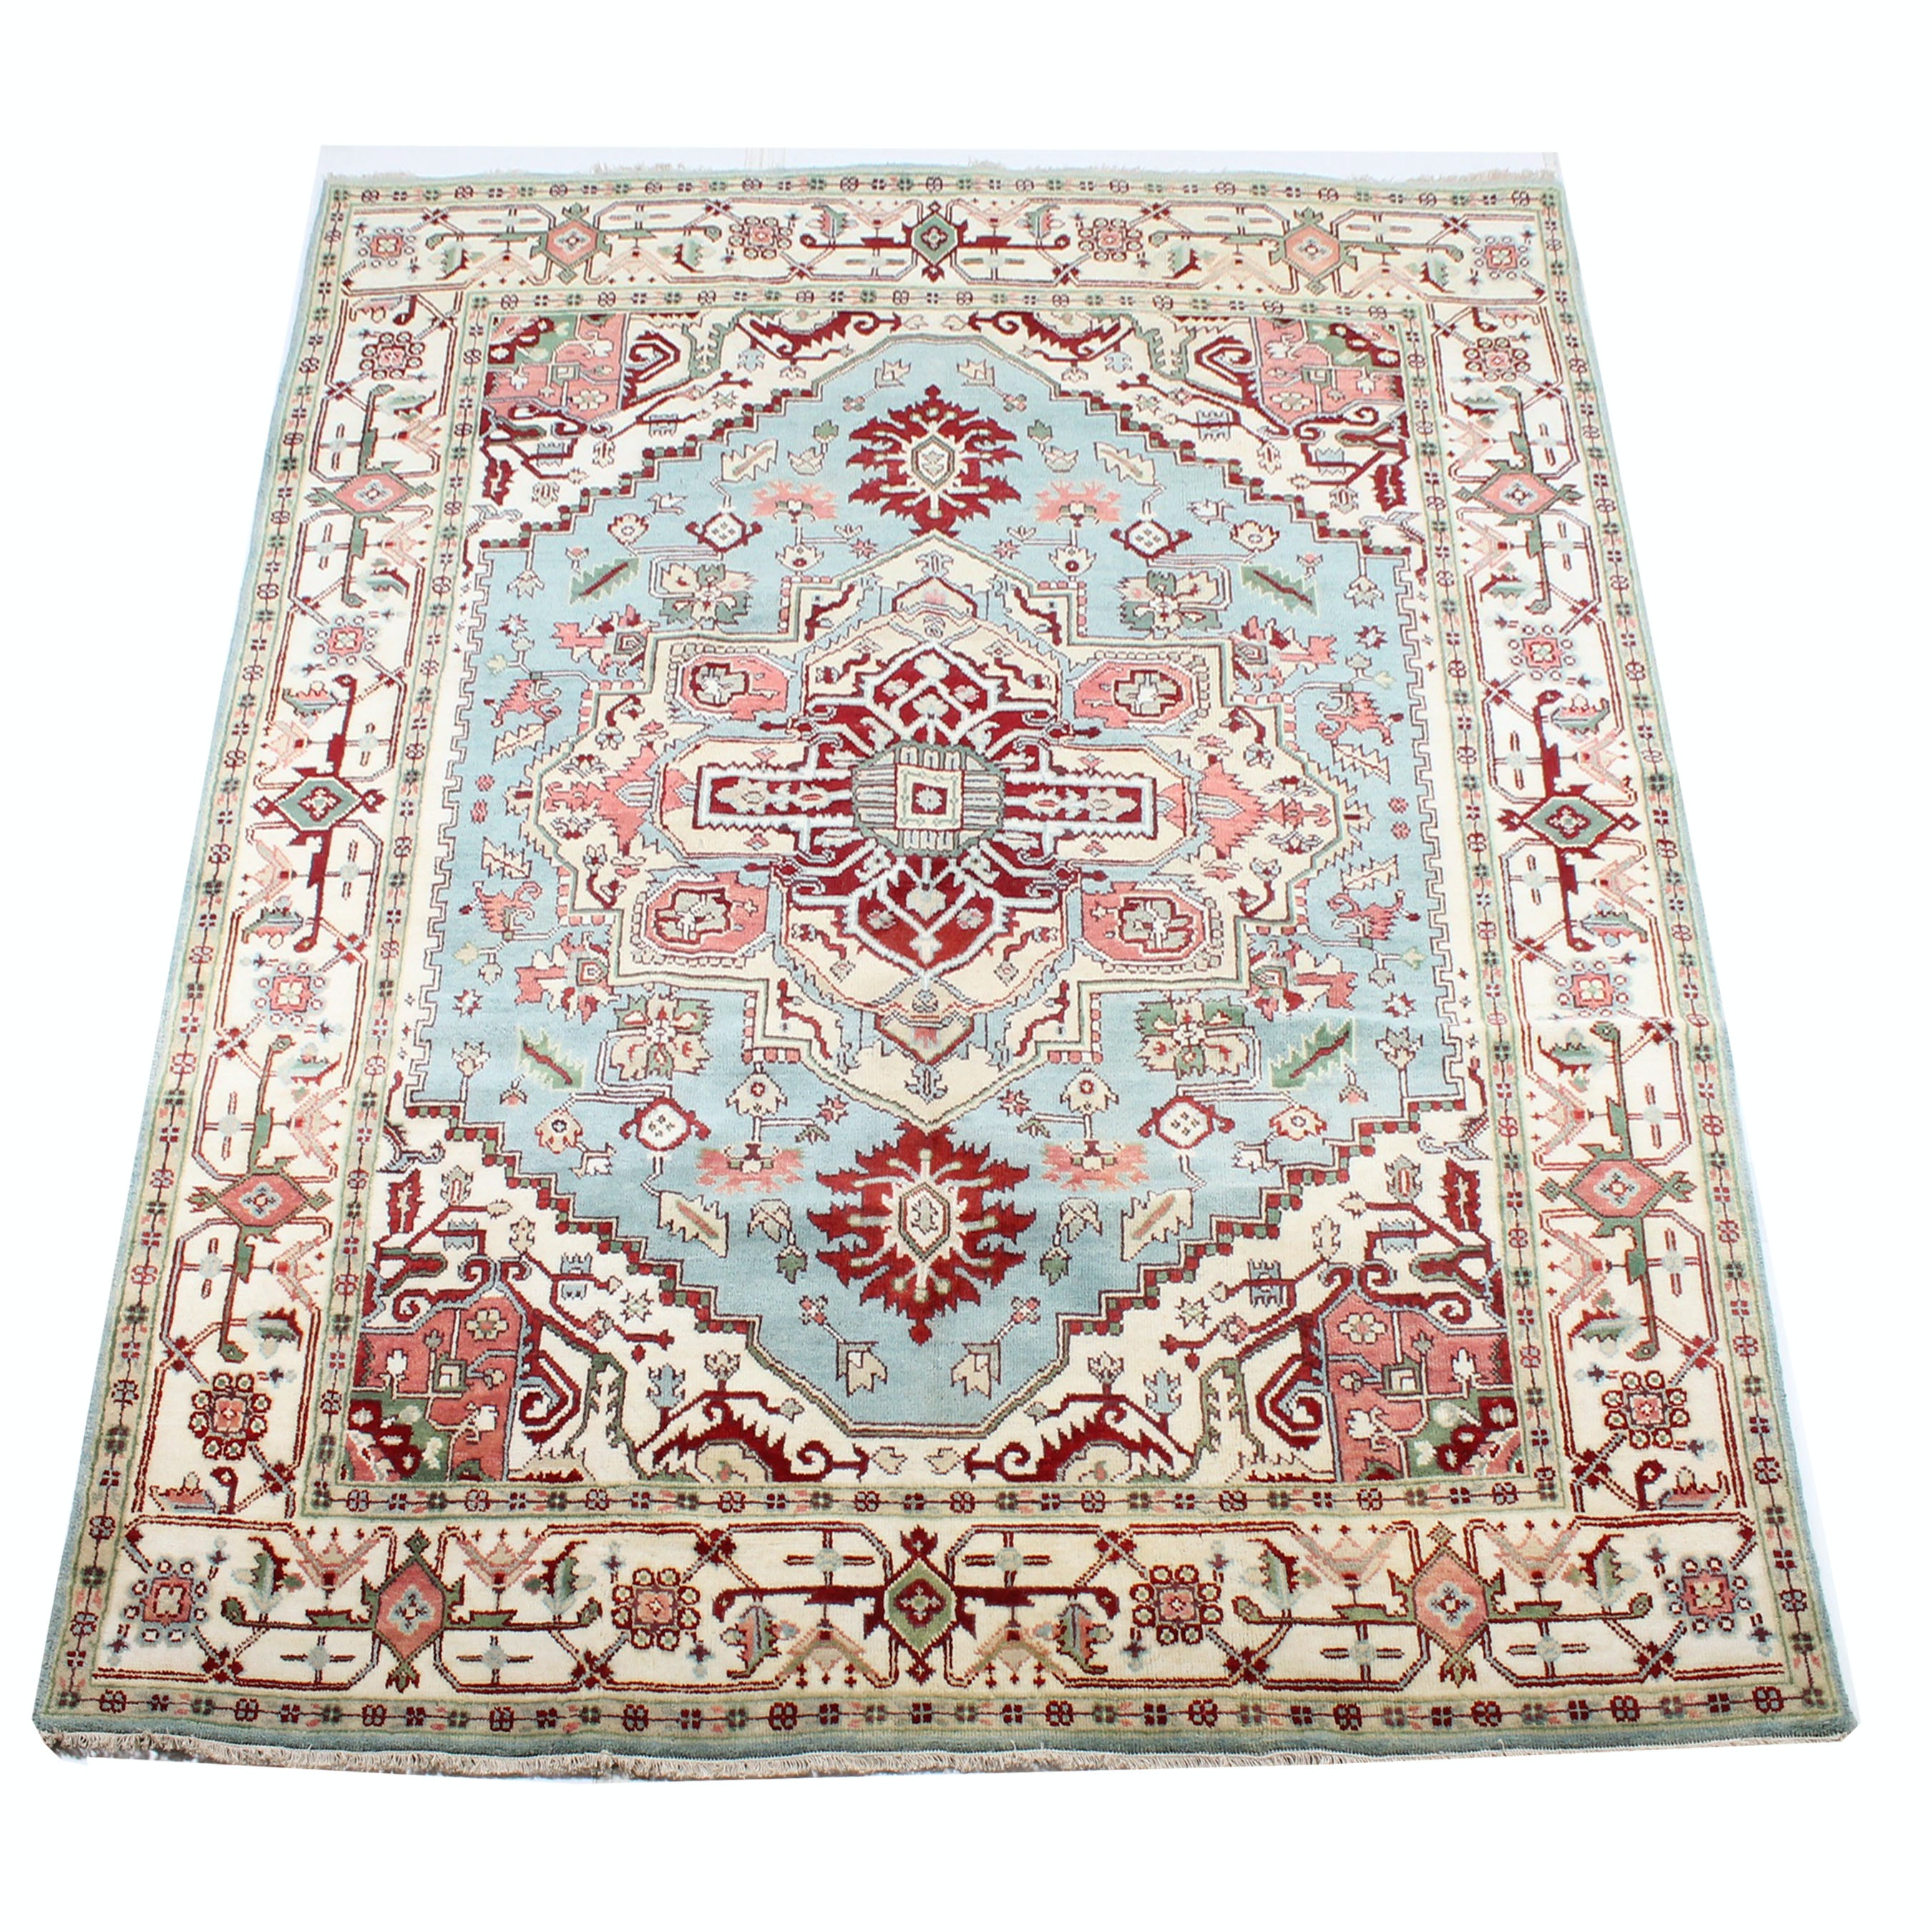 8' x 10' Hand-Knotted Indo-Persian Bakhshayesh Heriz Room Size Rug